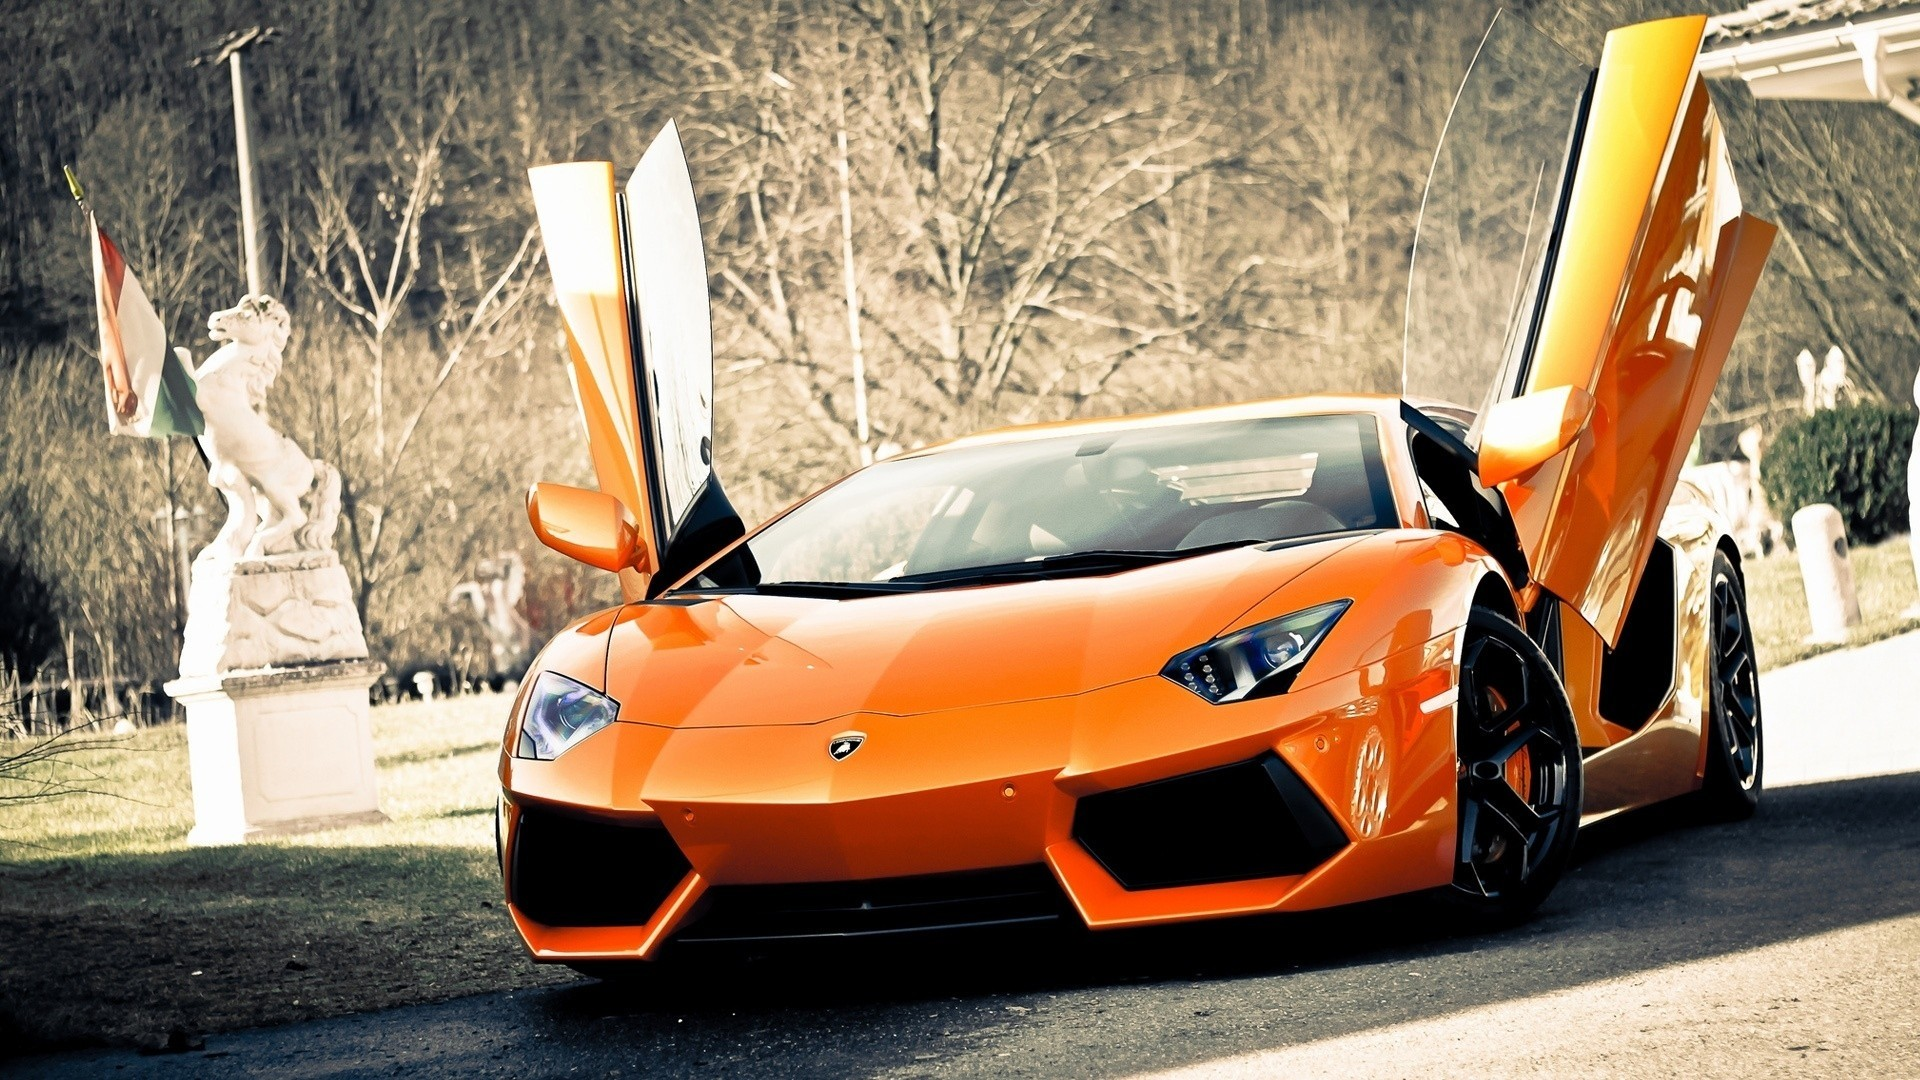 8 HD Sports Car Wallpapers : Get Free top quality 8 HD Sports Car Wallpapers  for